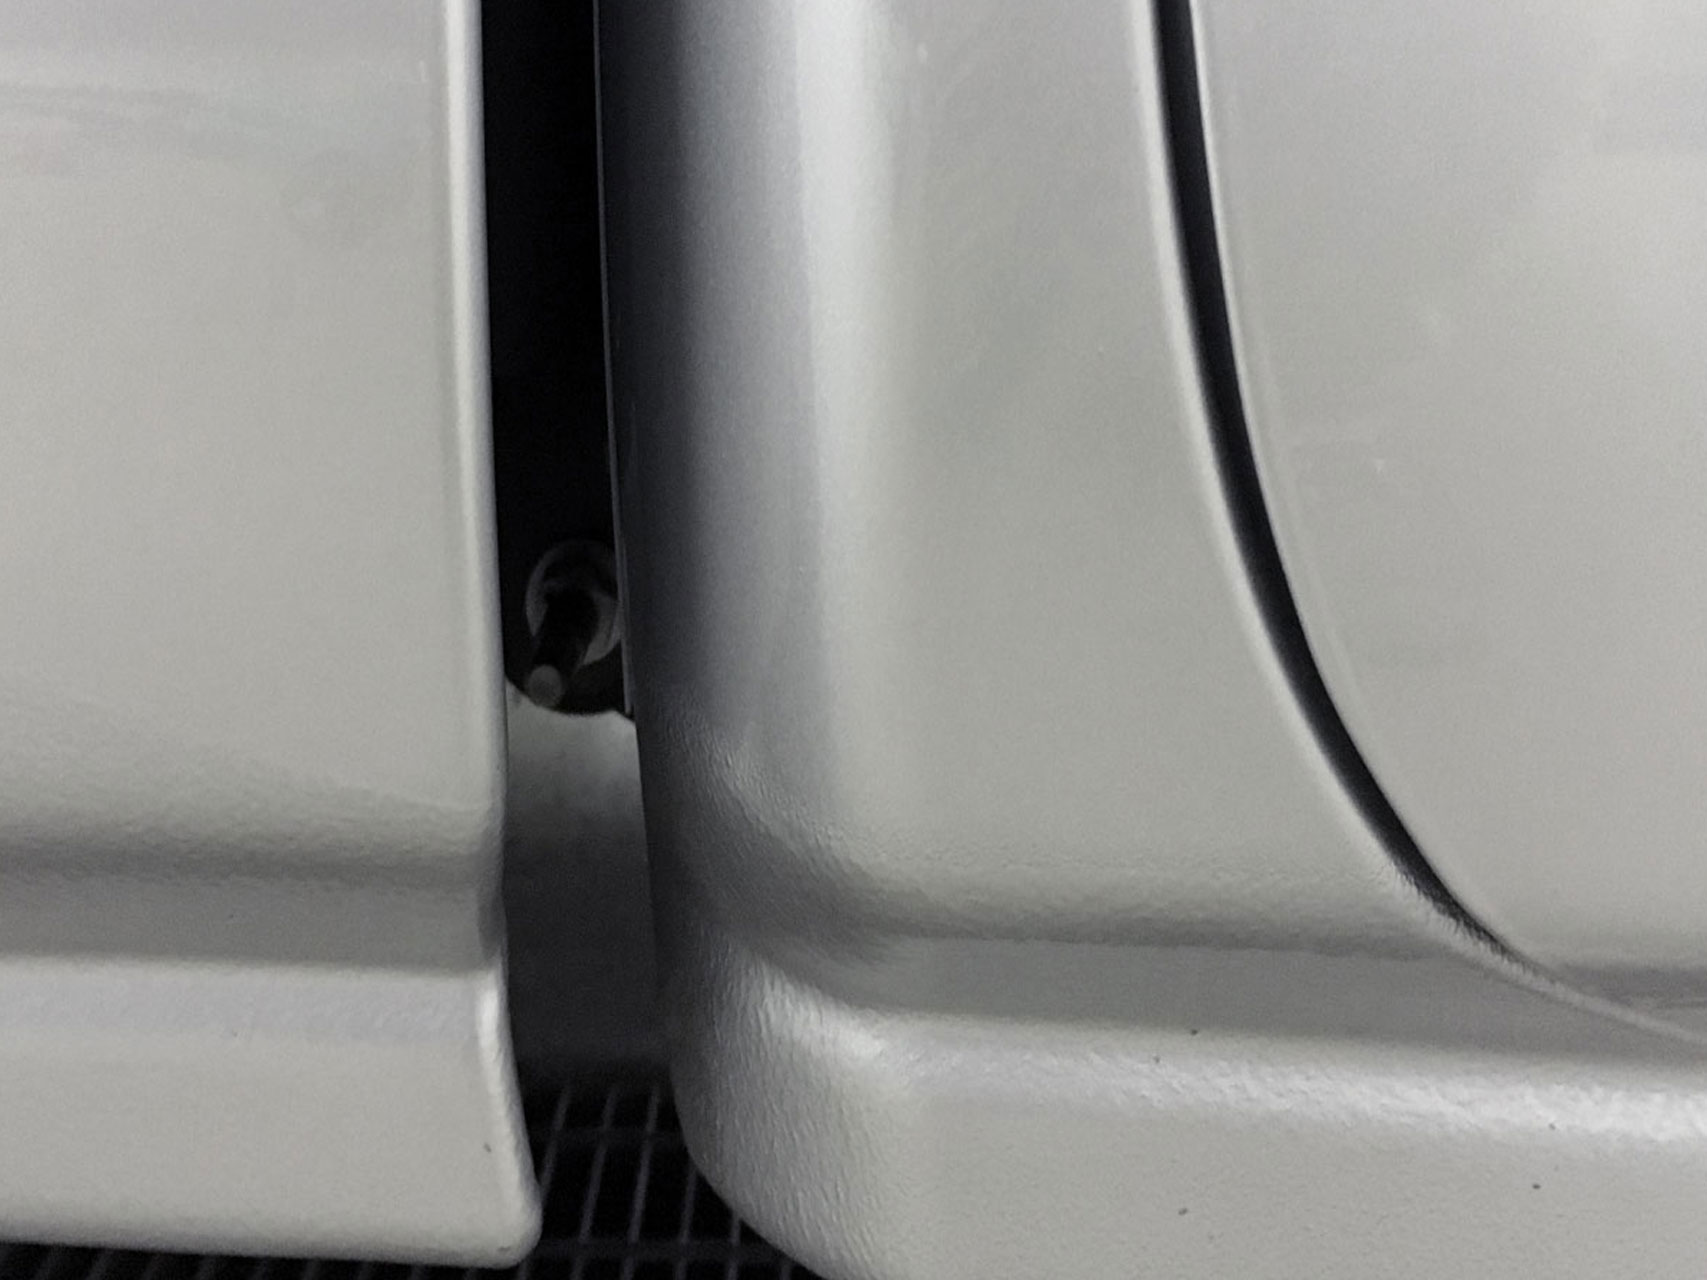 Paintless Dent Repair Grand Rapids, Michigan: Silverado cab corner - after